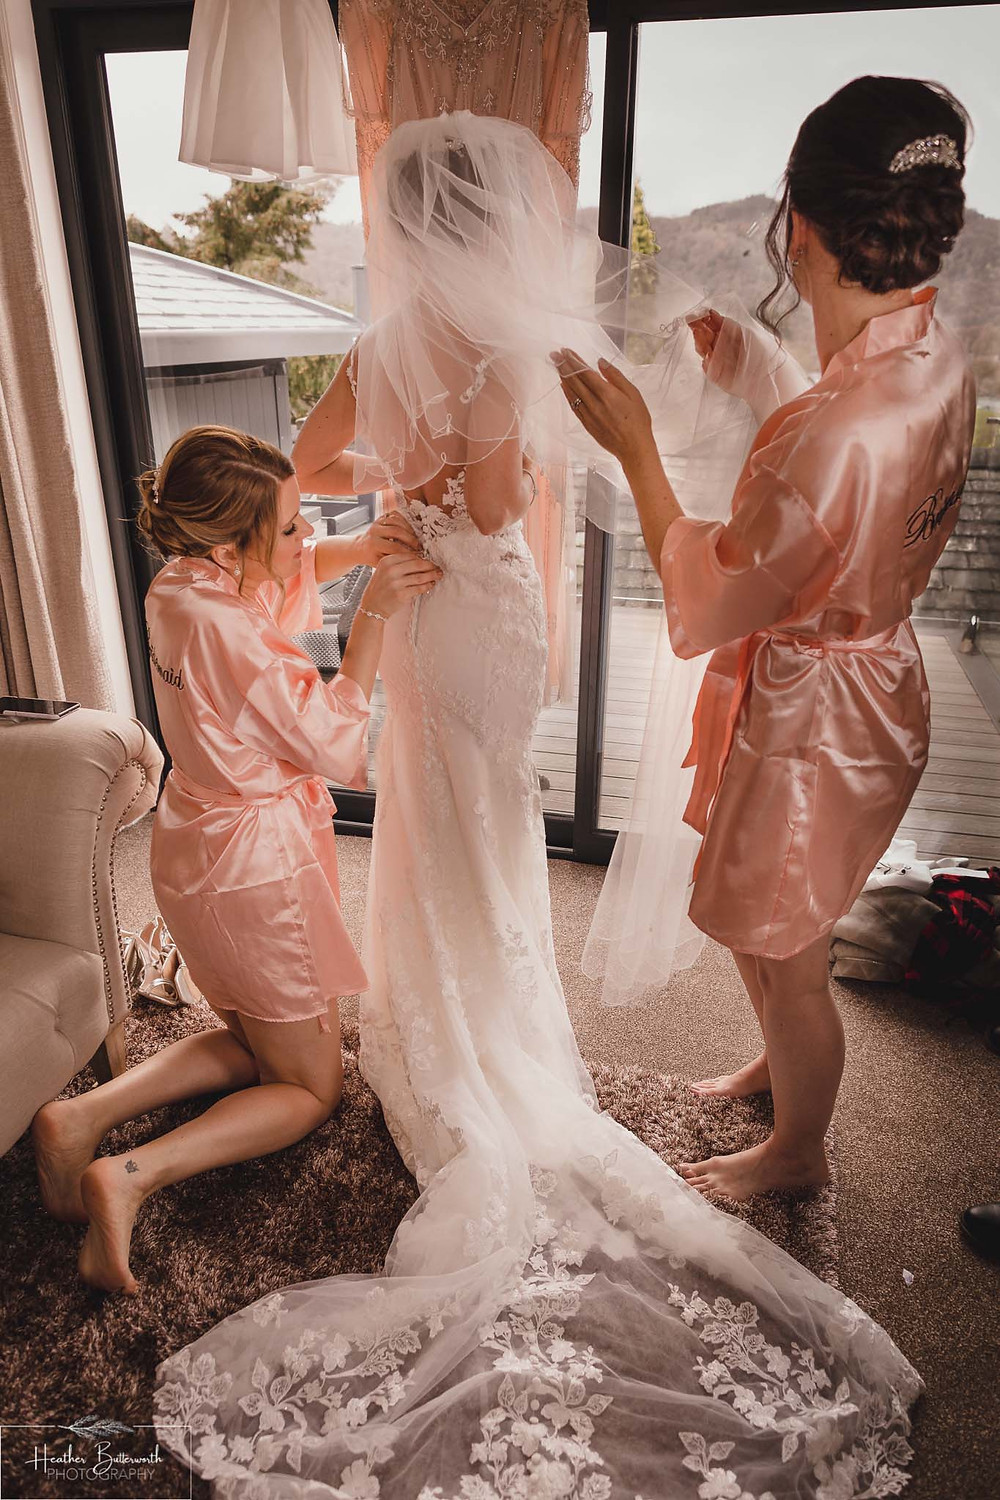 Bride Bex with her bridesmaids who are helping her into her dress and stood by a window during bridal preparations at The Burnside Hotel and Spa in Bowness-on-Windermere